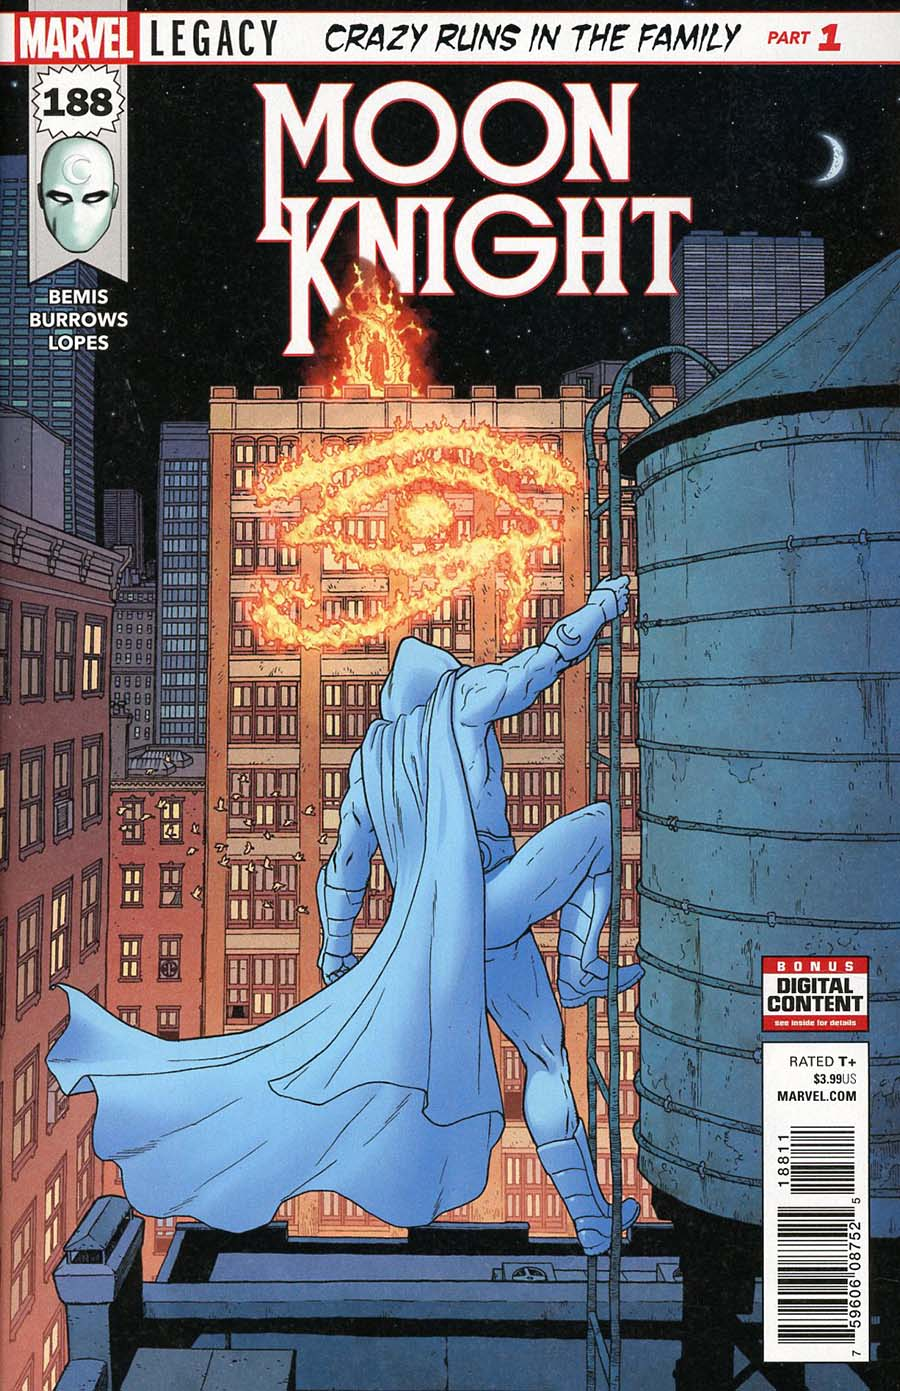 Moon Knight Vol 8 #188 Cover A Regular Jacen Burrows Cover (Marvel Legacy Tie-In)